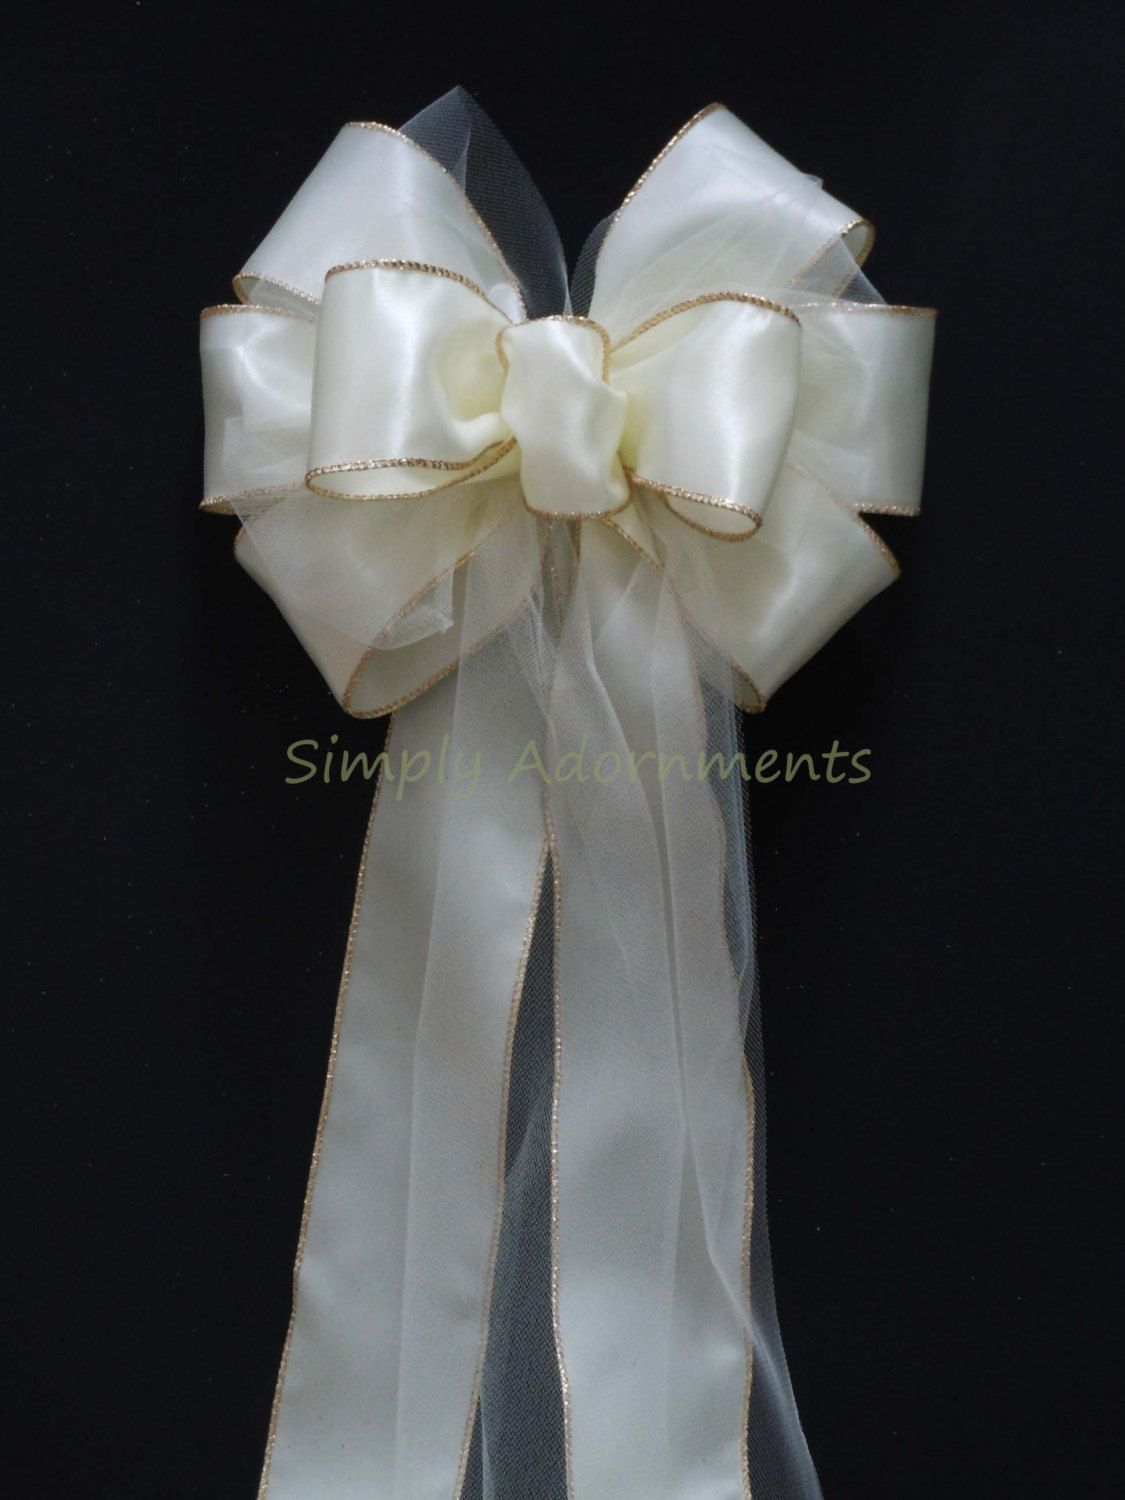 10 Ivory Satin Tulle Wedding Pew Bows Church by